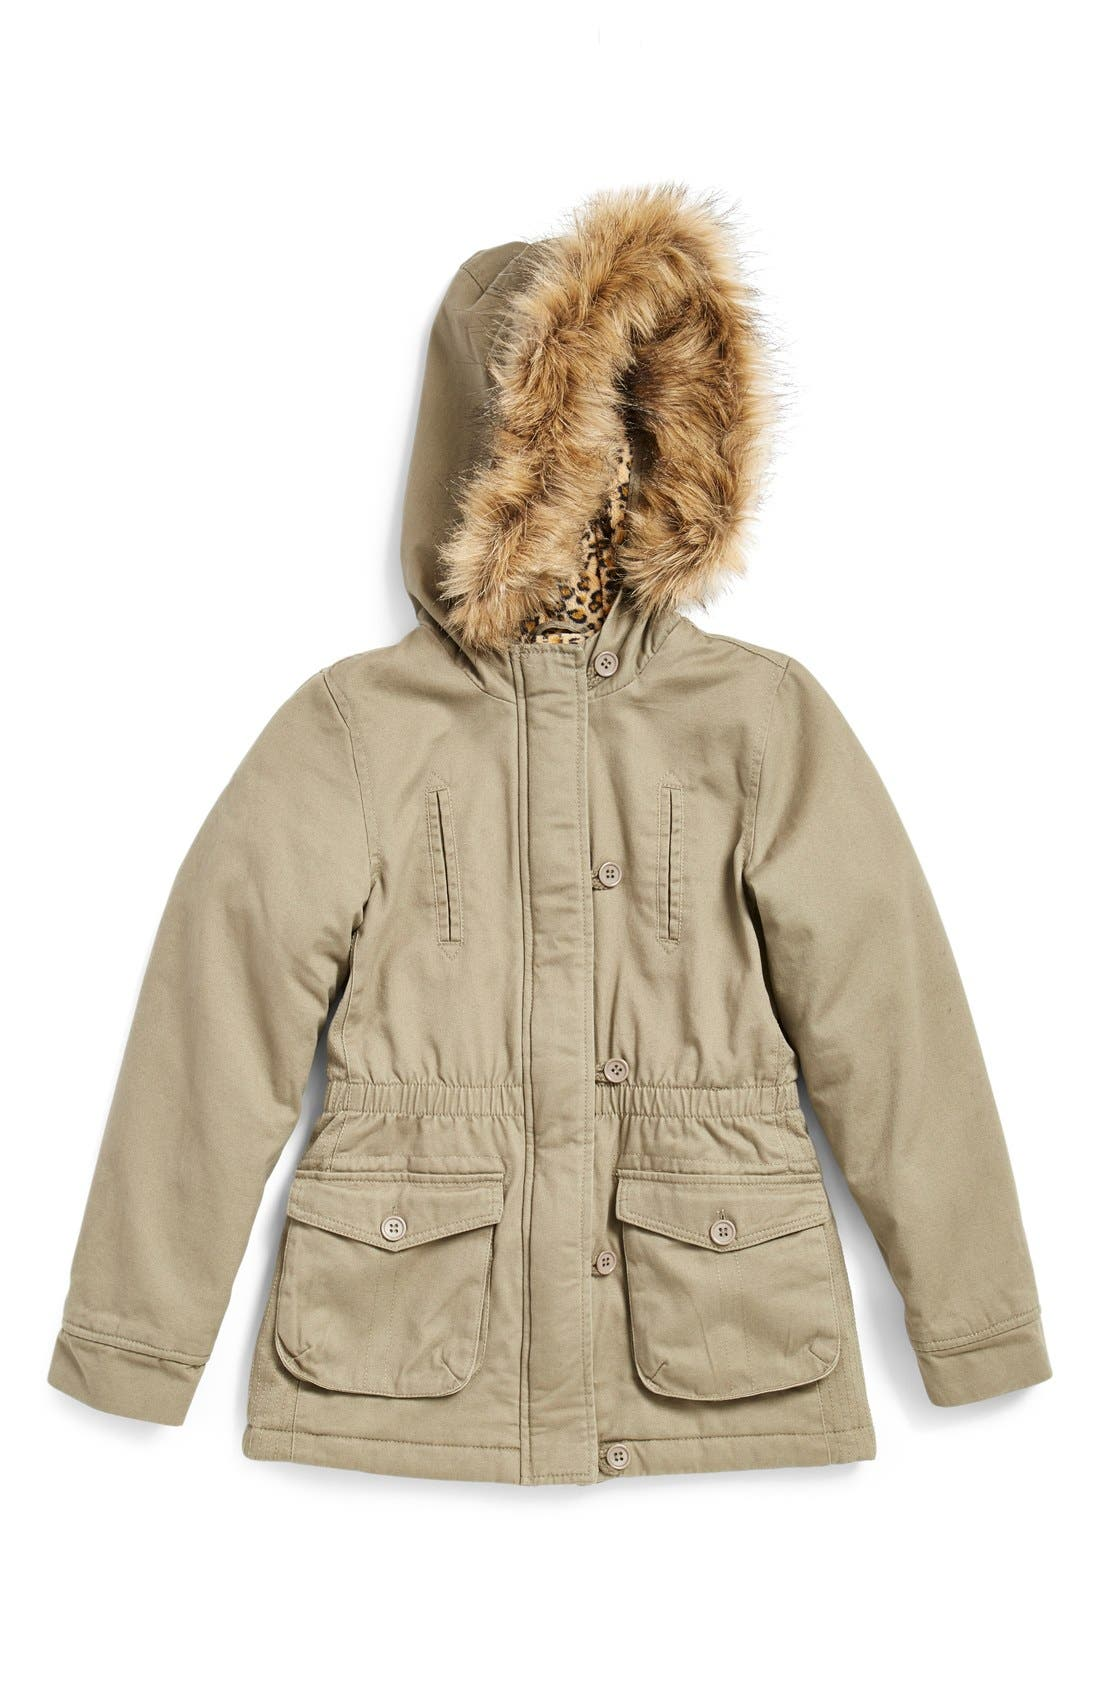 COFFEESHOP KIDS Coffee Shop Cotton Anorak with Faux